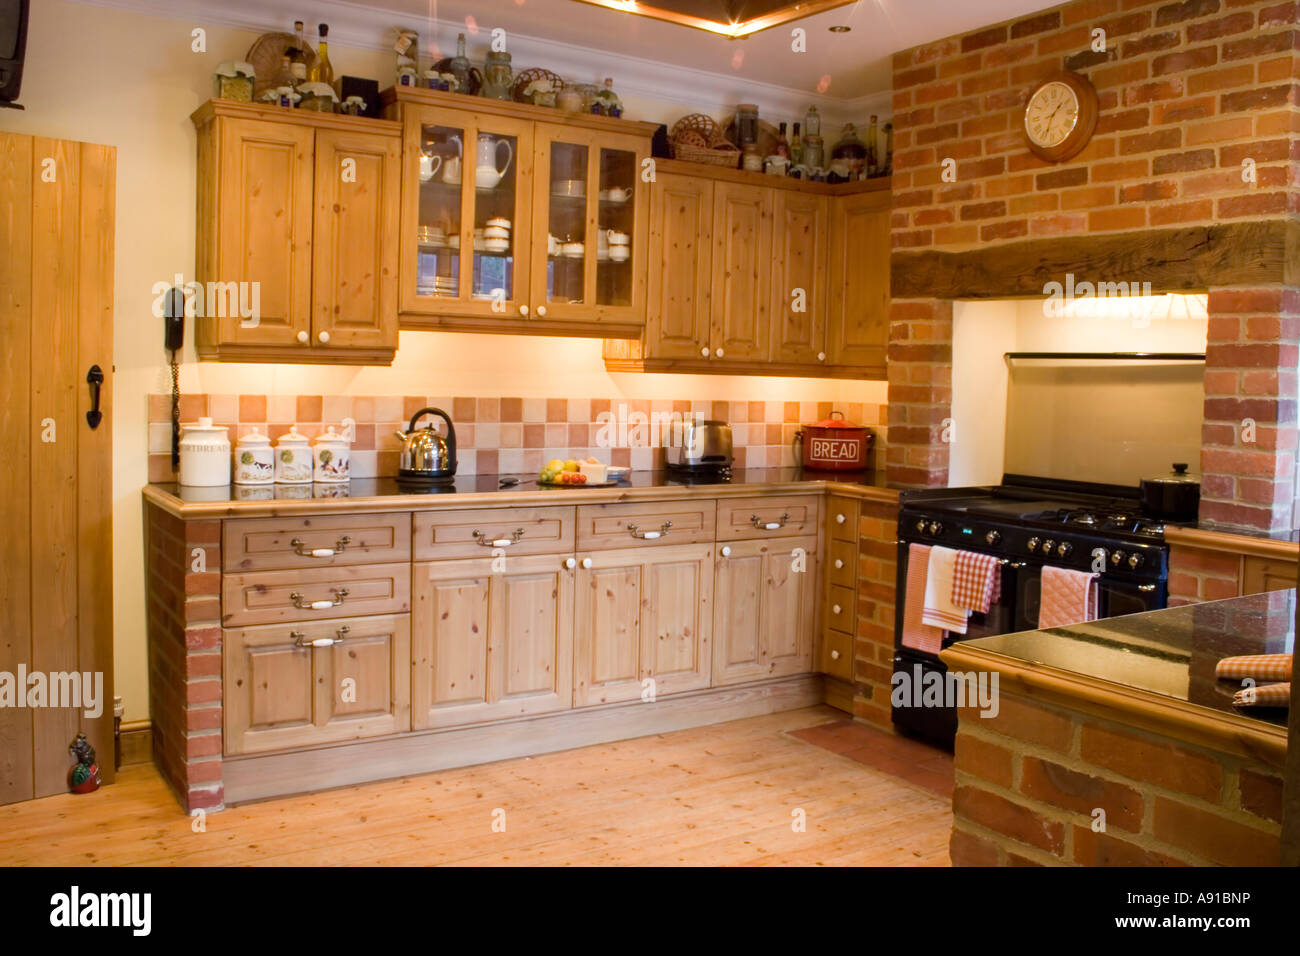 A Country Kitchen In A Farmhouse Wooden Cupboards And Floor With